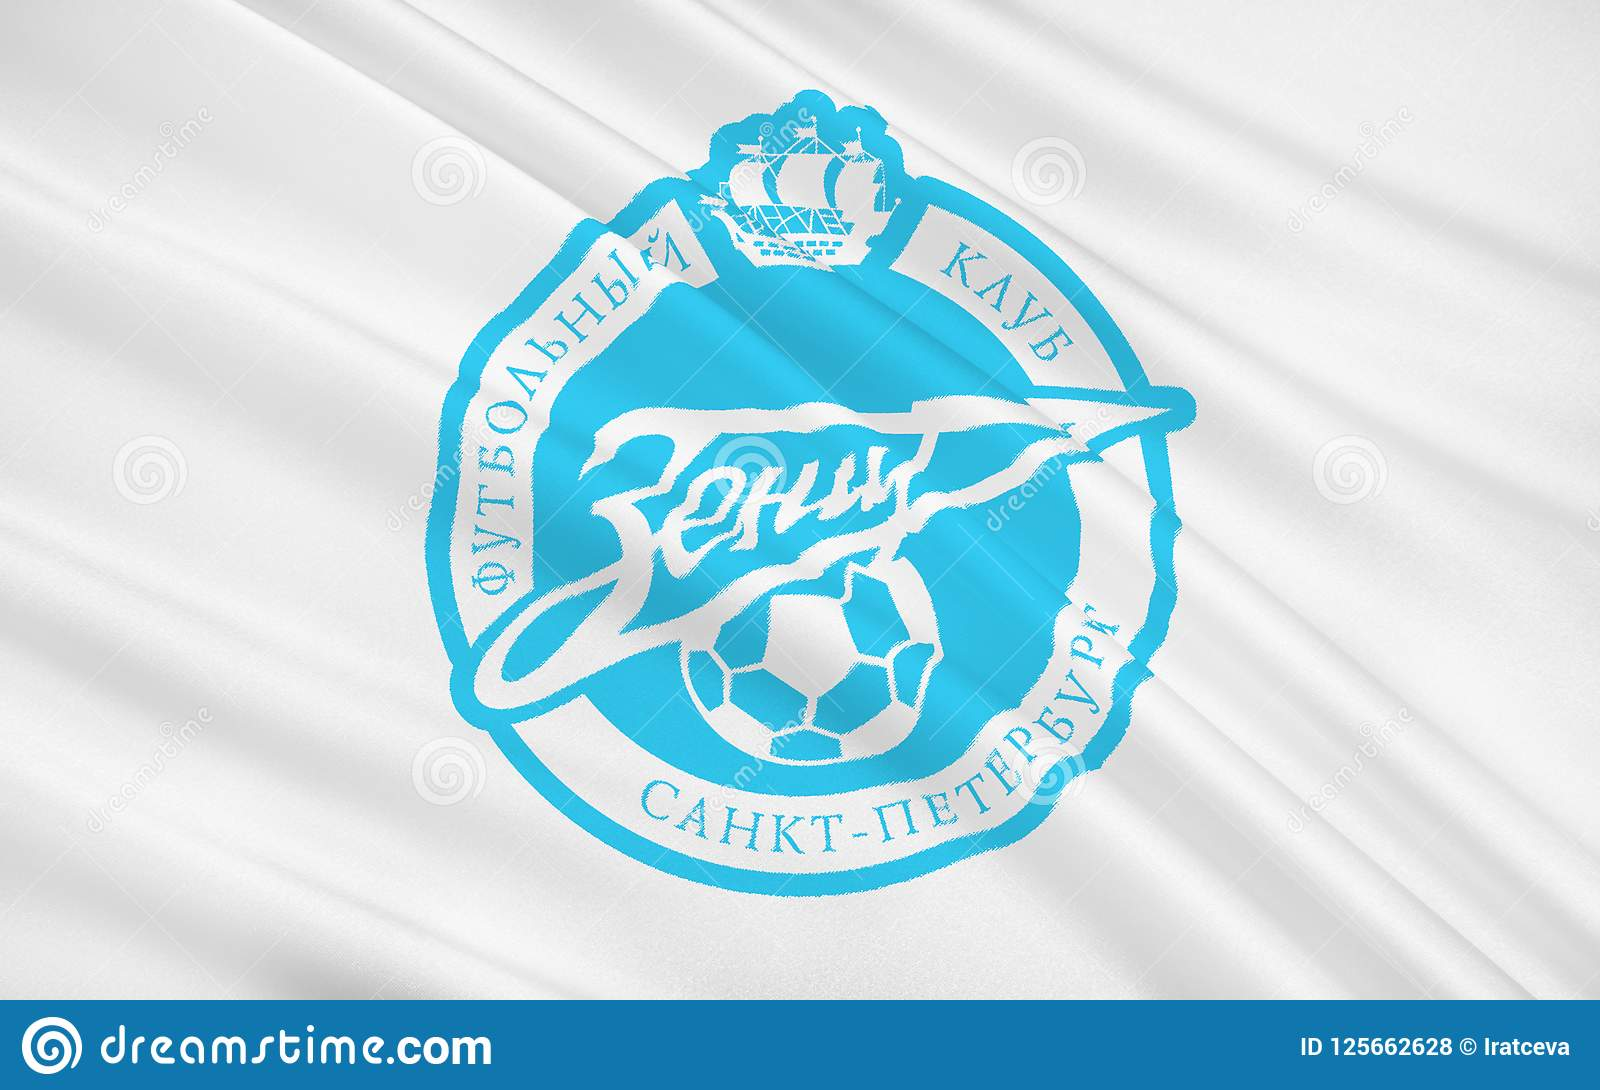 Flag Football Club Zenit Russia Editorial Stock Photo Illustration Of Blue Gazprom 125662628